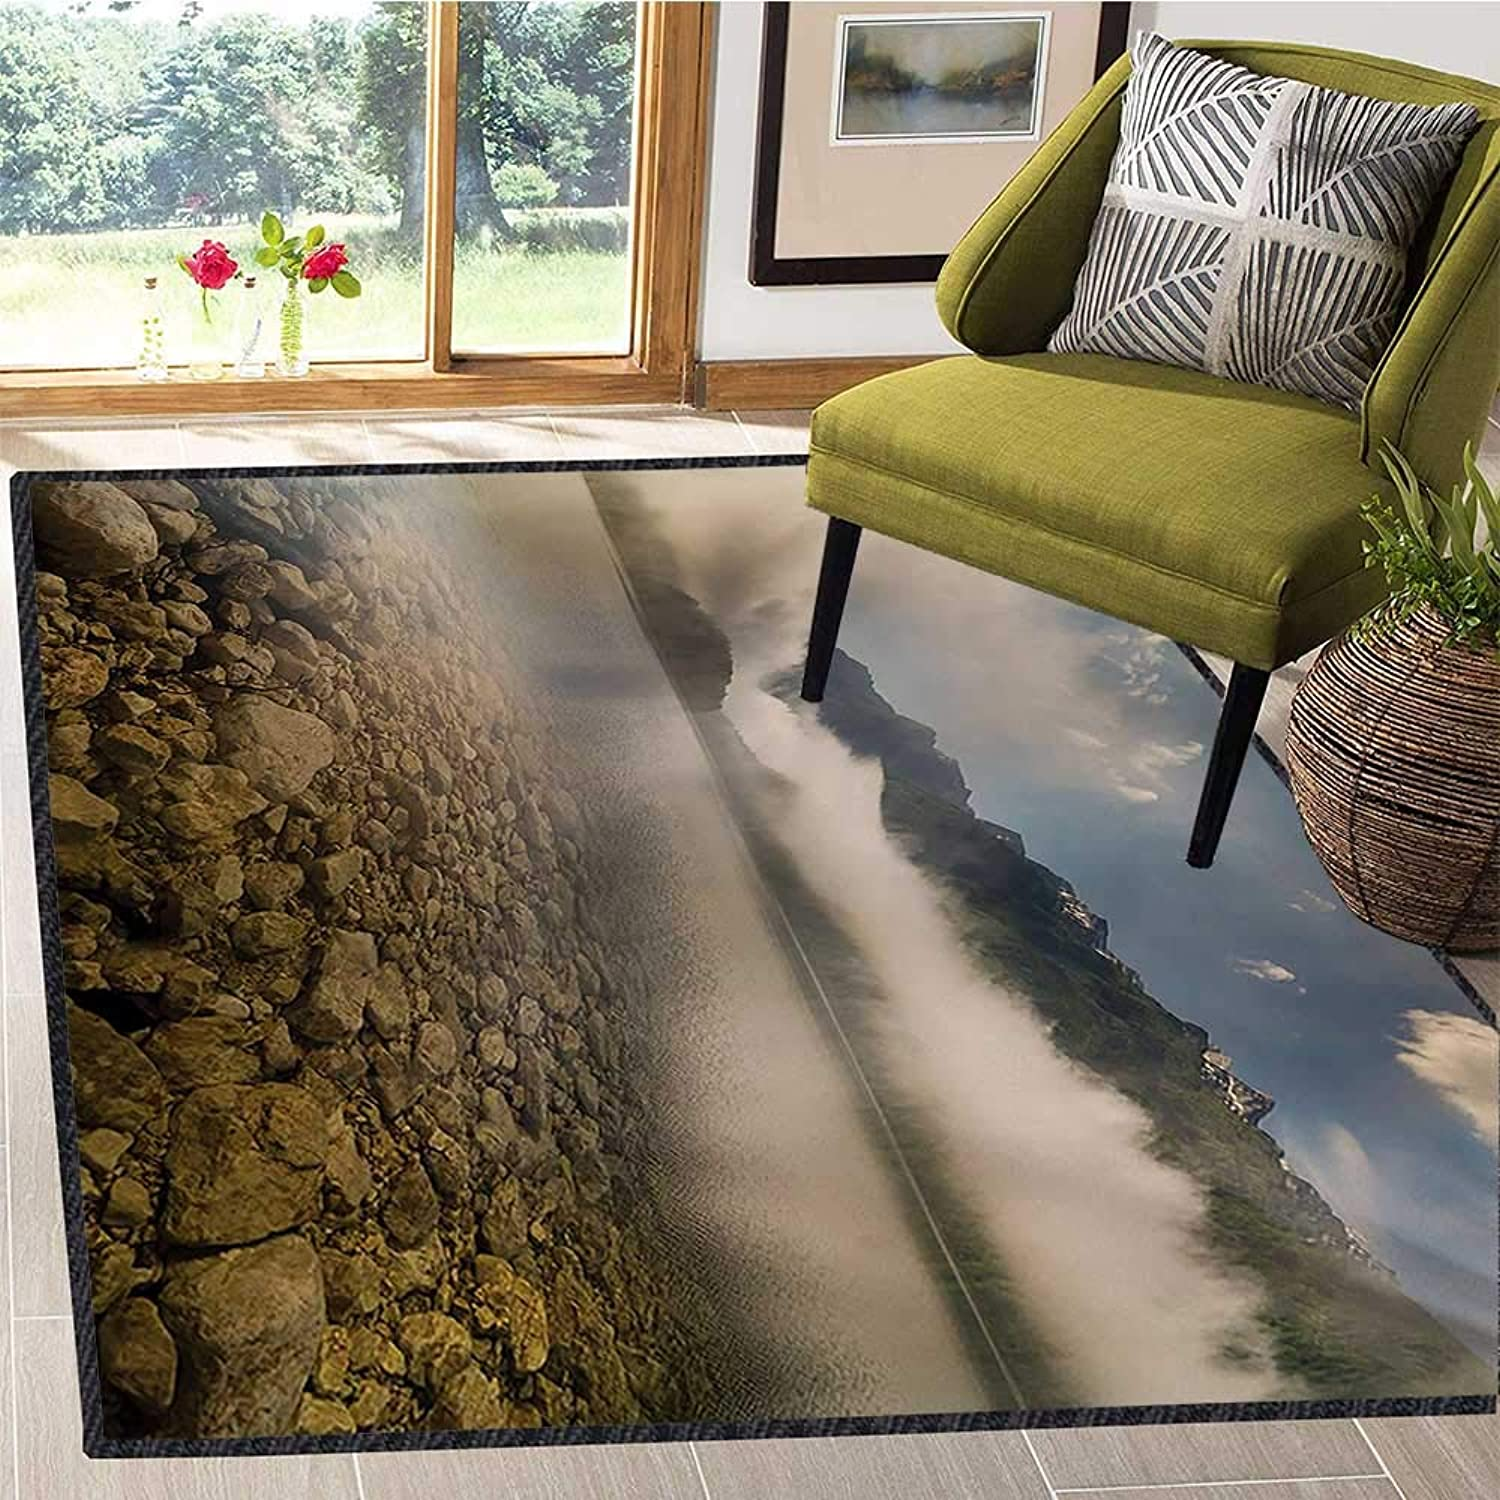 Nature, Floor Mat for Kids, Alpine Lake with Stones Rocks in Crystal Water with Misty Fogy Clouds Image, Door Mat Indoors Bathroom Mats Non Slip 4x5 Ft Grey and White